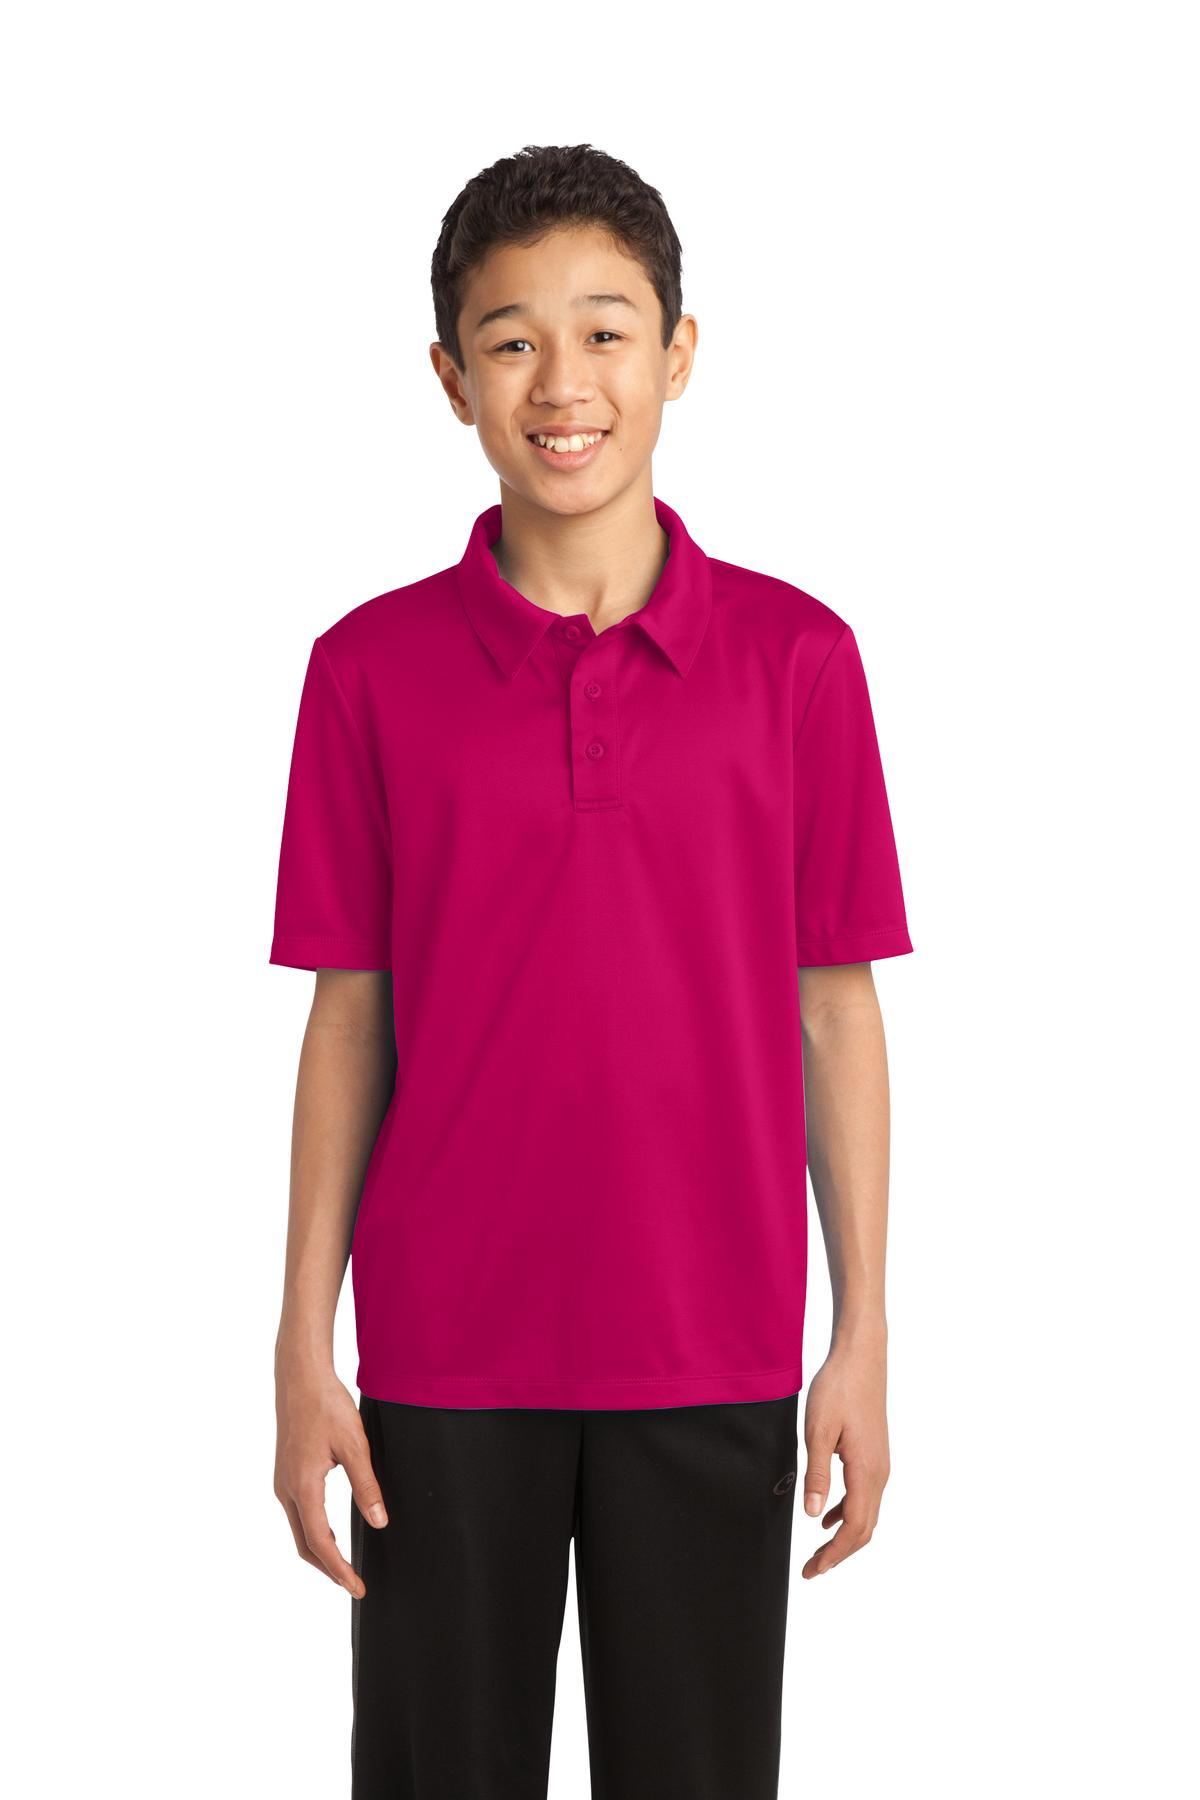 Port Authority ®  Youth Silk Touch™ Performance Polo. Y540 - Pink Raspberry